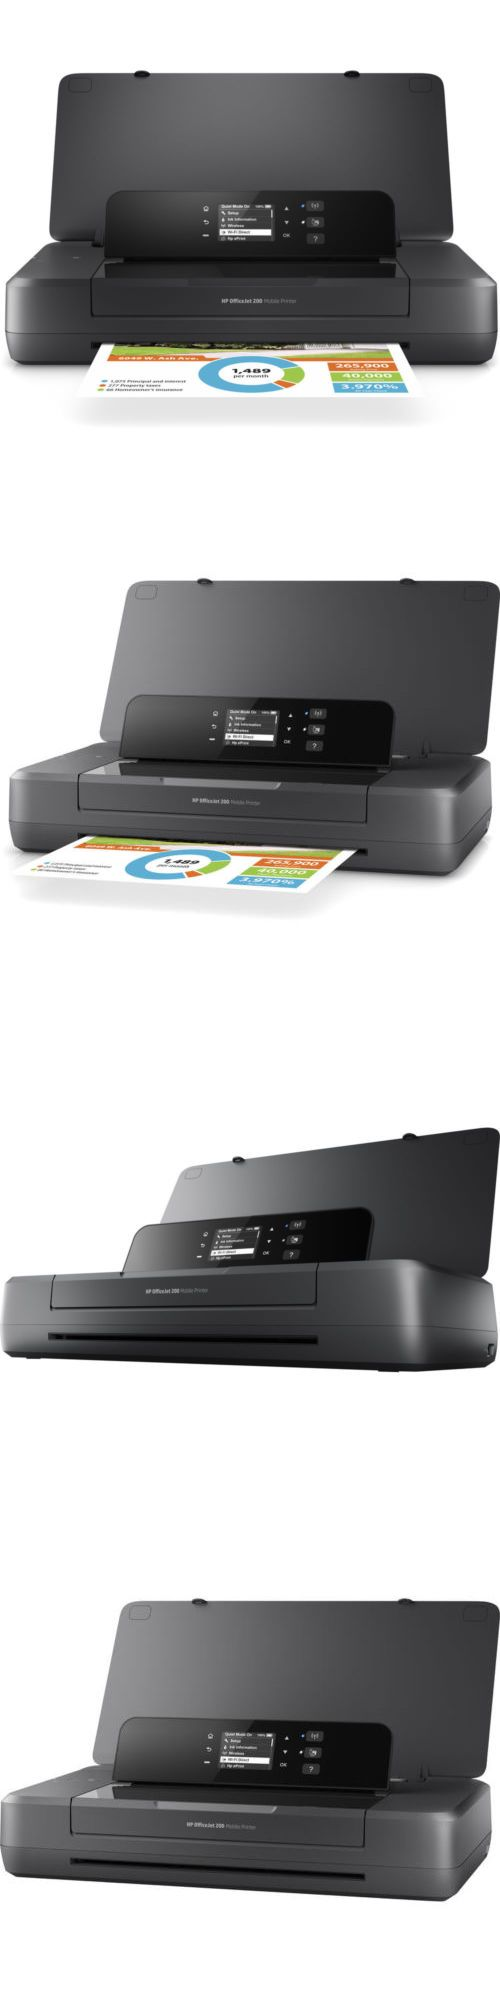 Printers 1245 Hp Officejet 200 Portable Printer With Wireless And Mobile Printing Cz993a Buy It Now Only 199 With Images Wireless Printer Hp Officejet Mobile Print